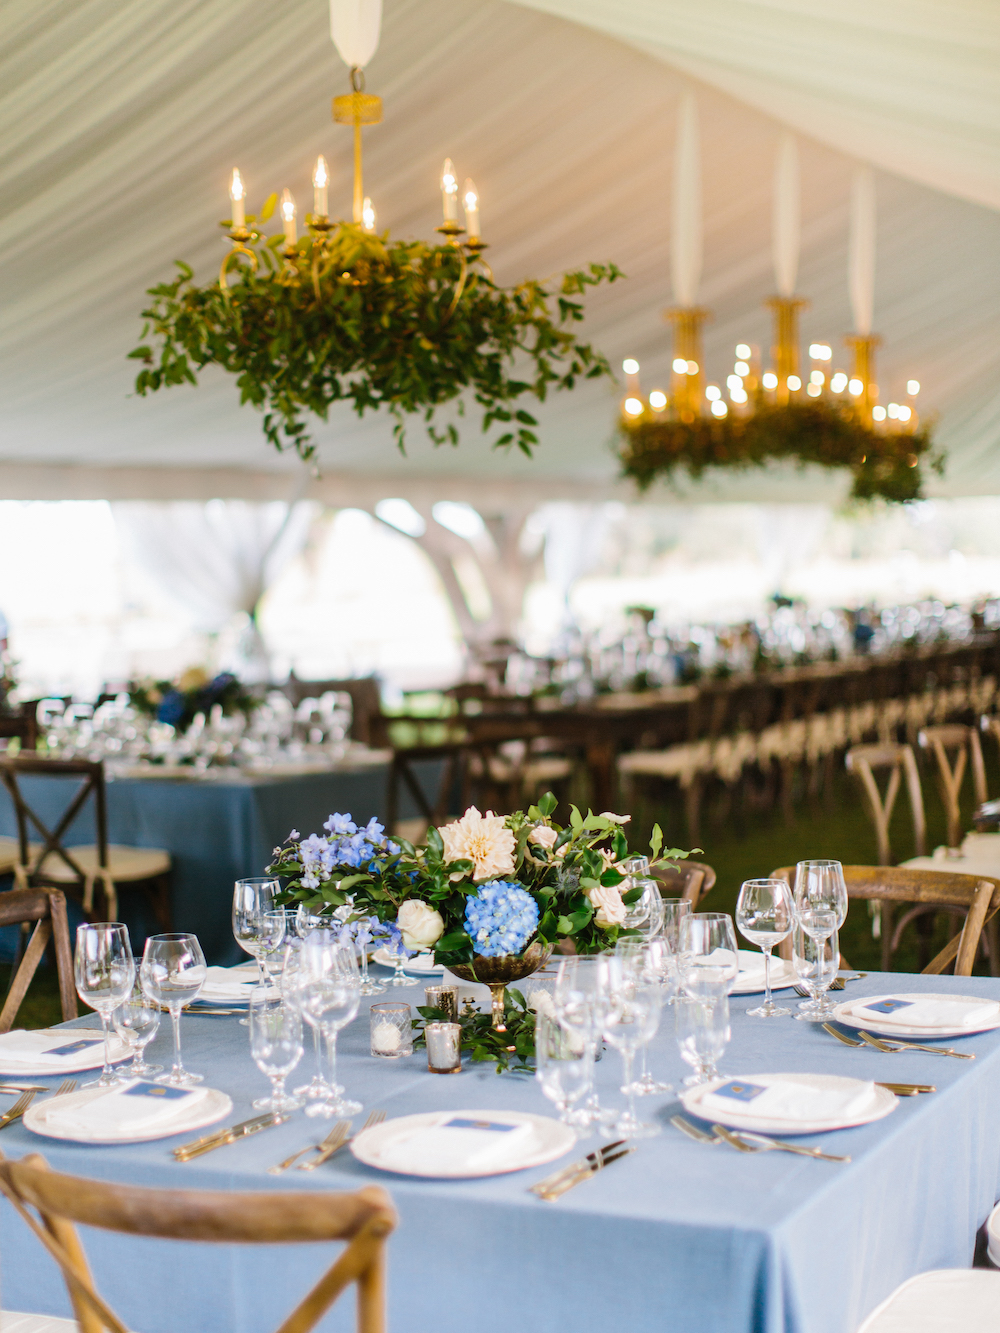 Simple table setting featuring a table cloth in a light shade of Classic Blue: Color Of The Year